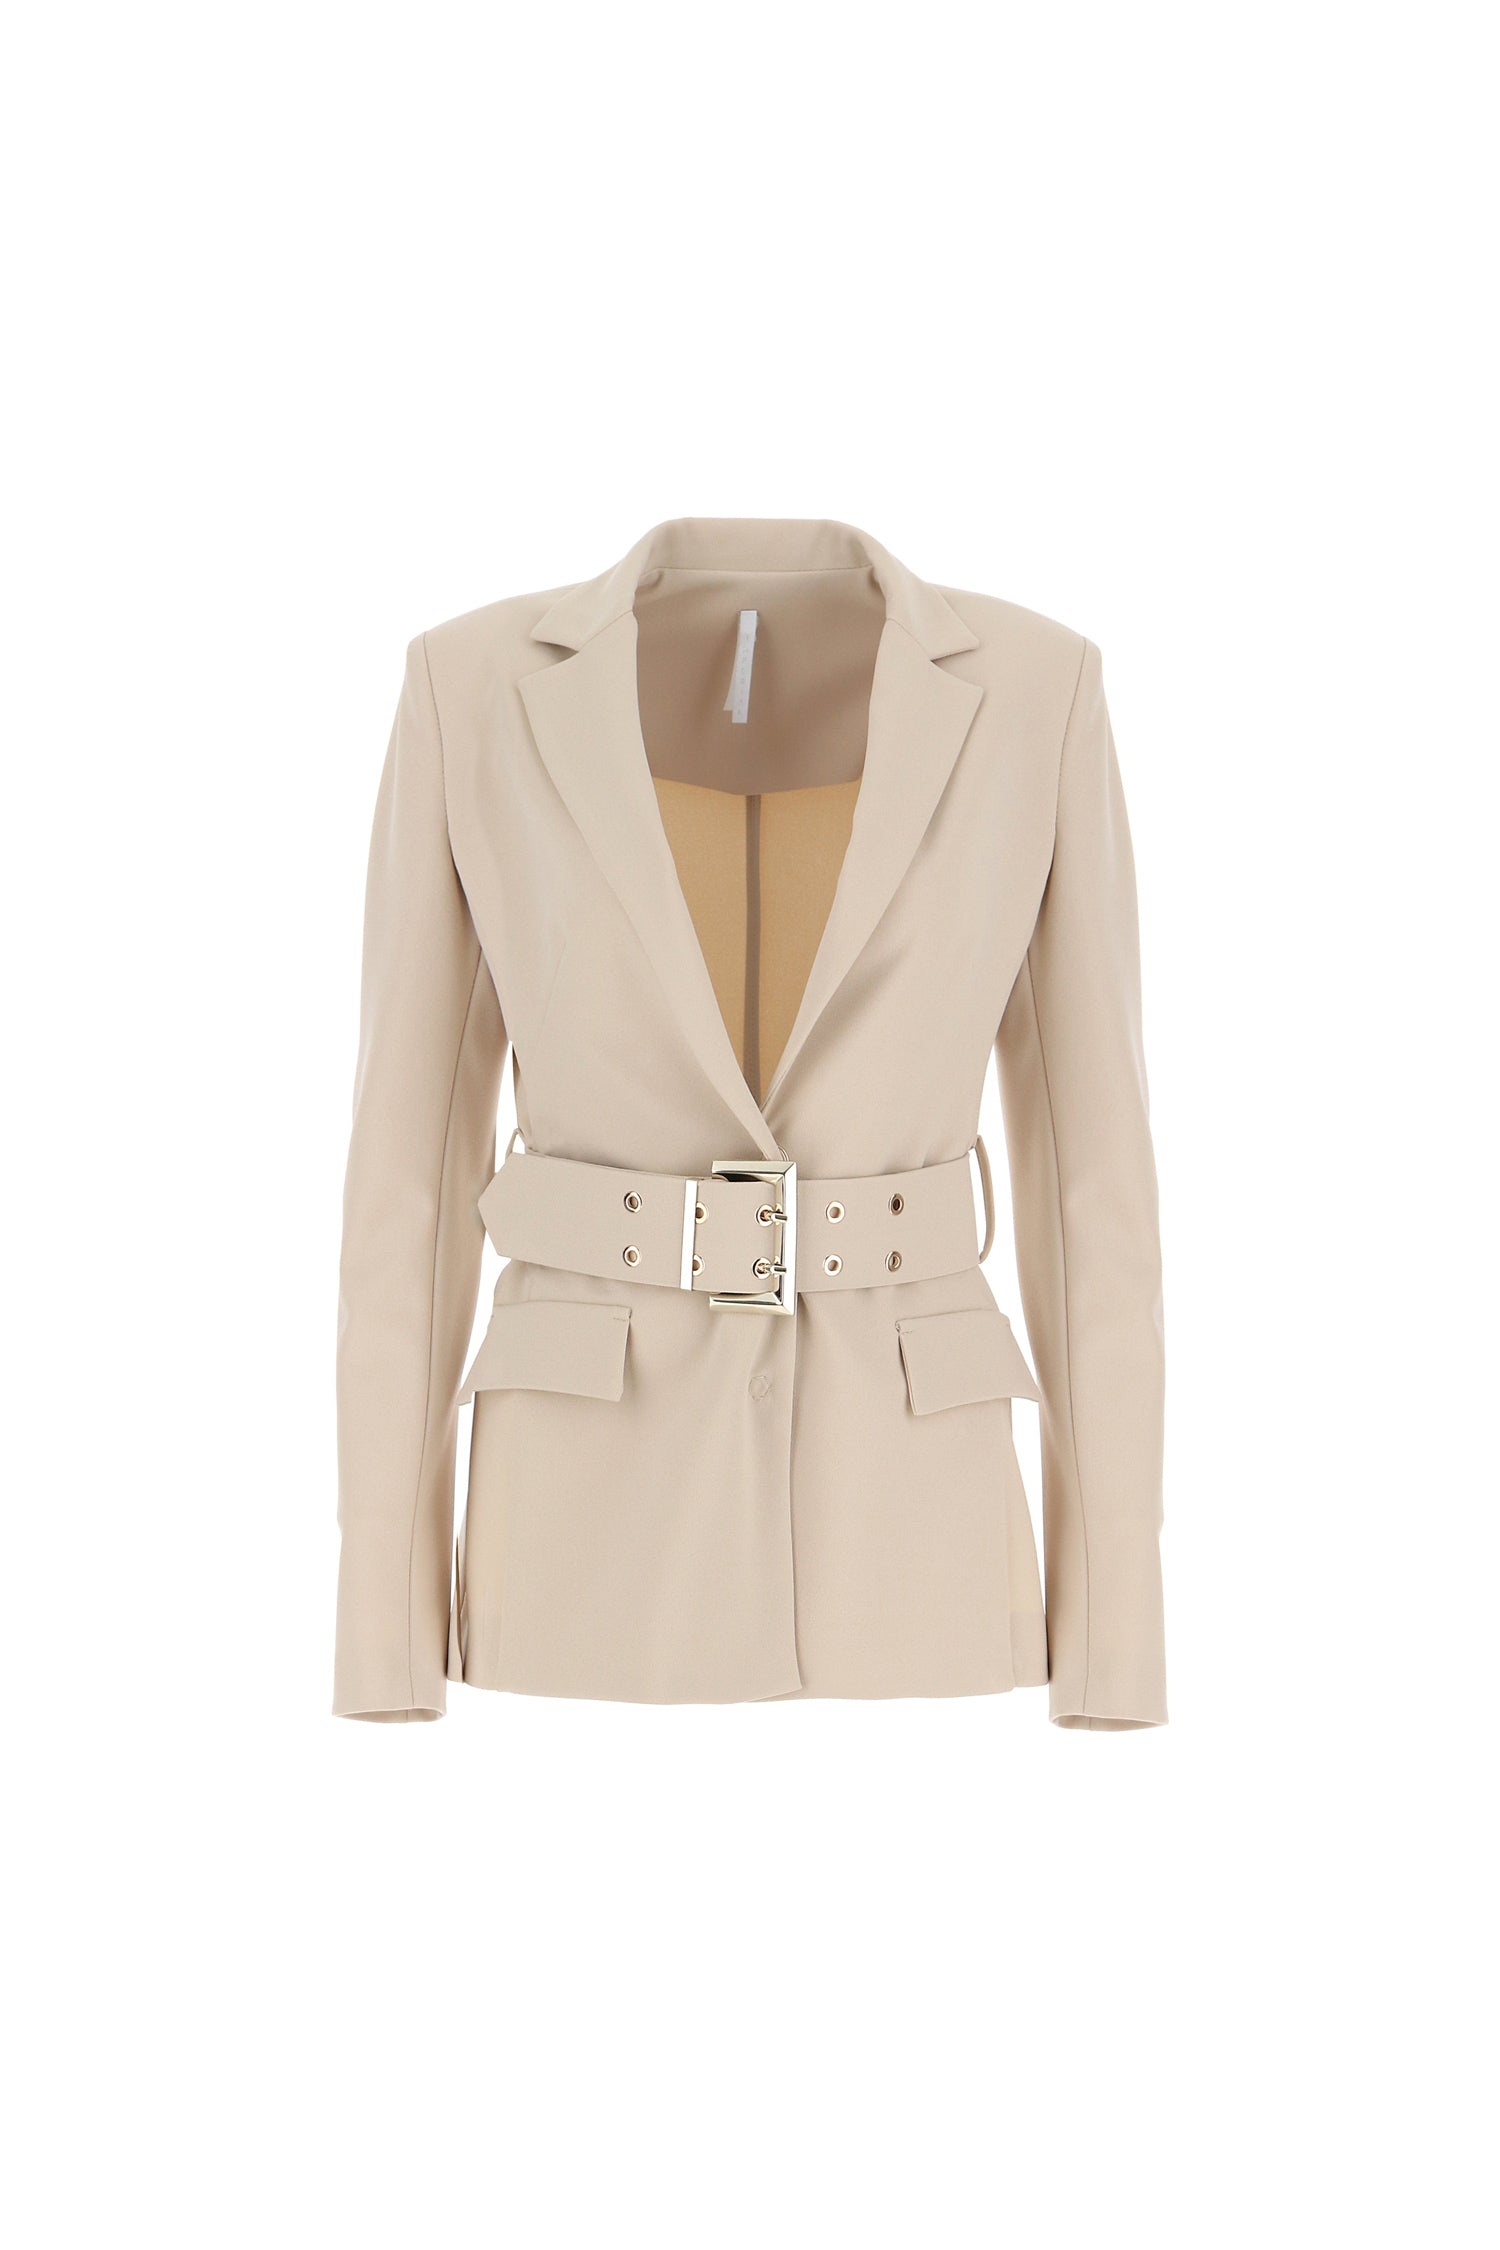 IMPERIAL | FITTED BLAZER WITH BELTED WAIST